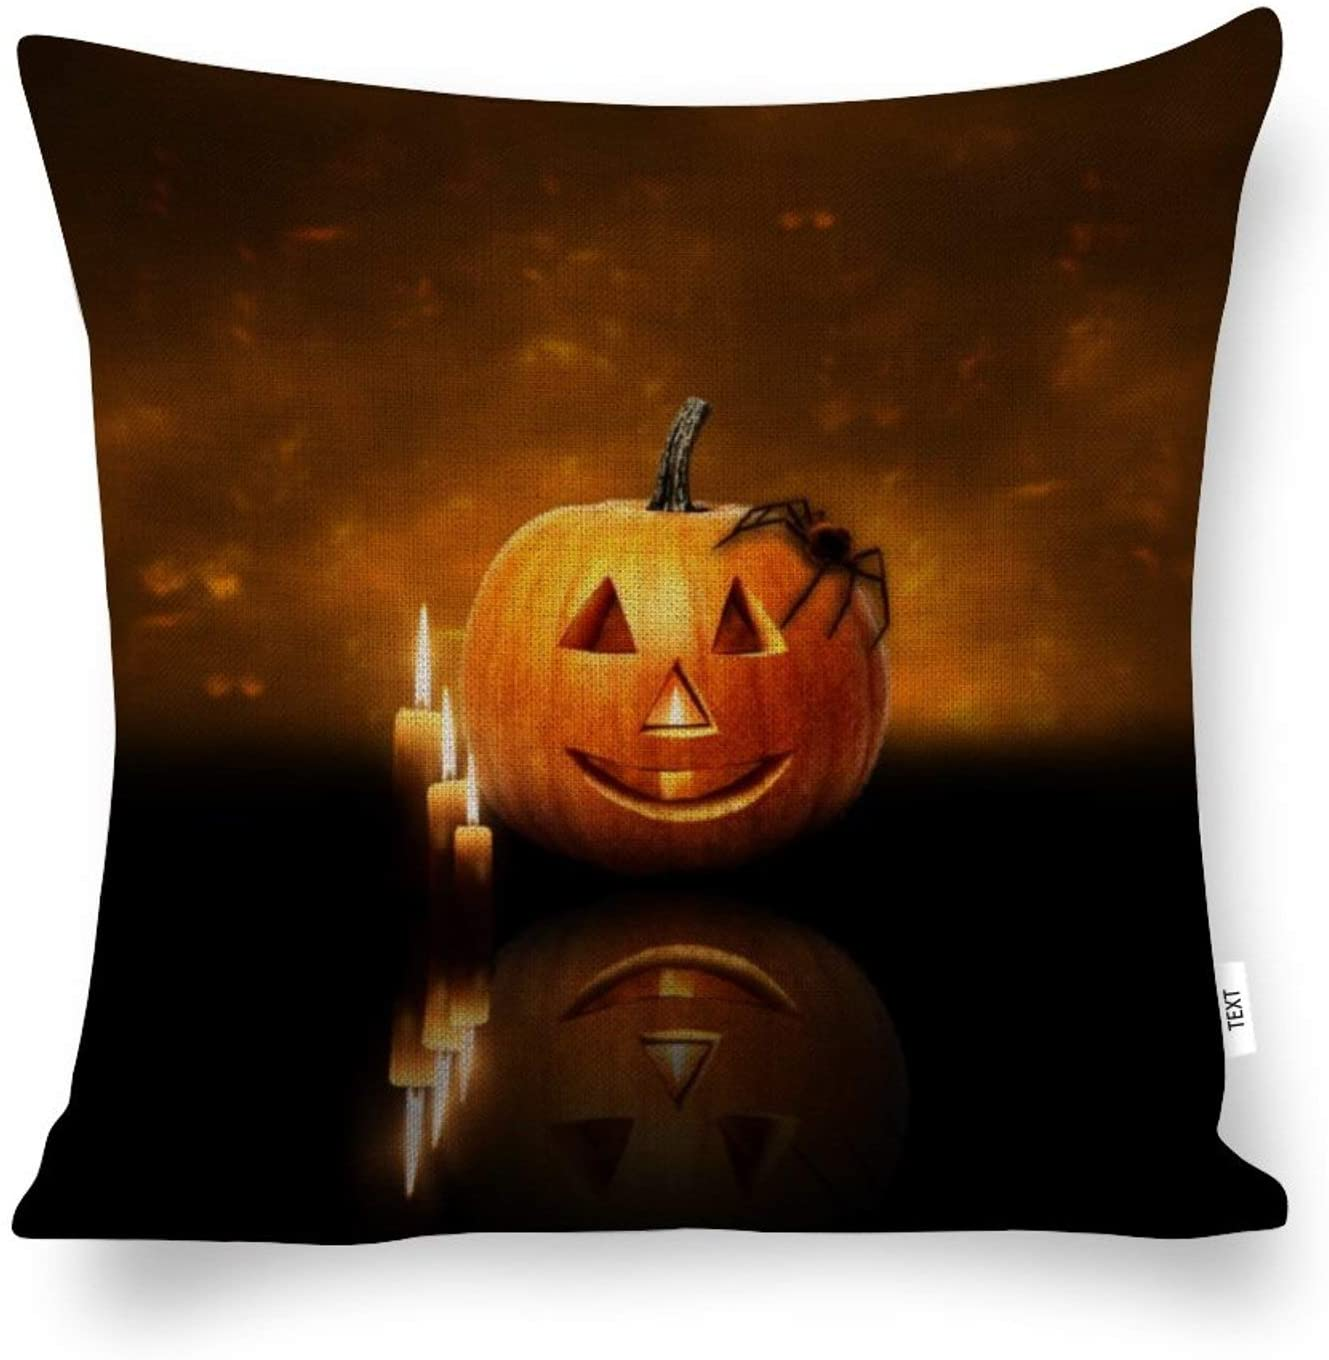 AILOVYO Decorative Cotton and Hemp Throw Pillow Covers Family Halloween Pumpkin Lantern and Candles for Room Bedroom Room Sofa Chair Car